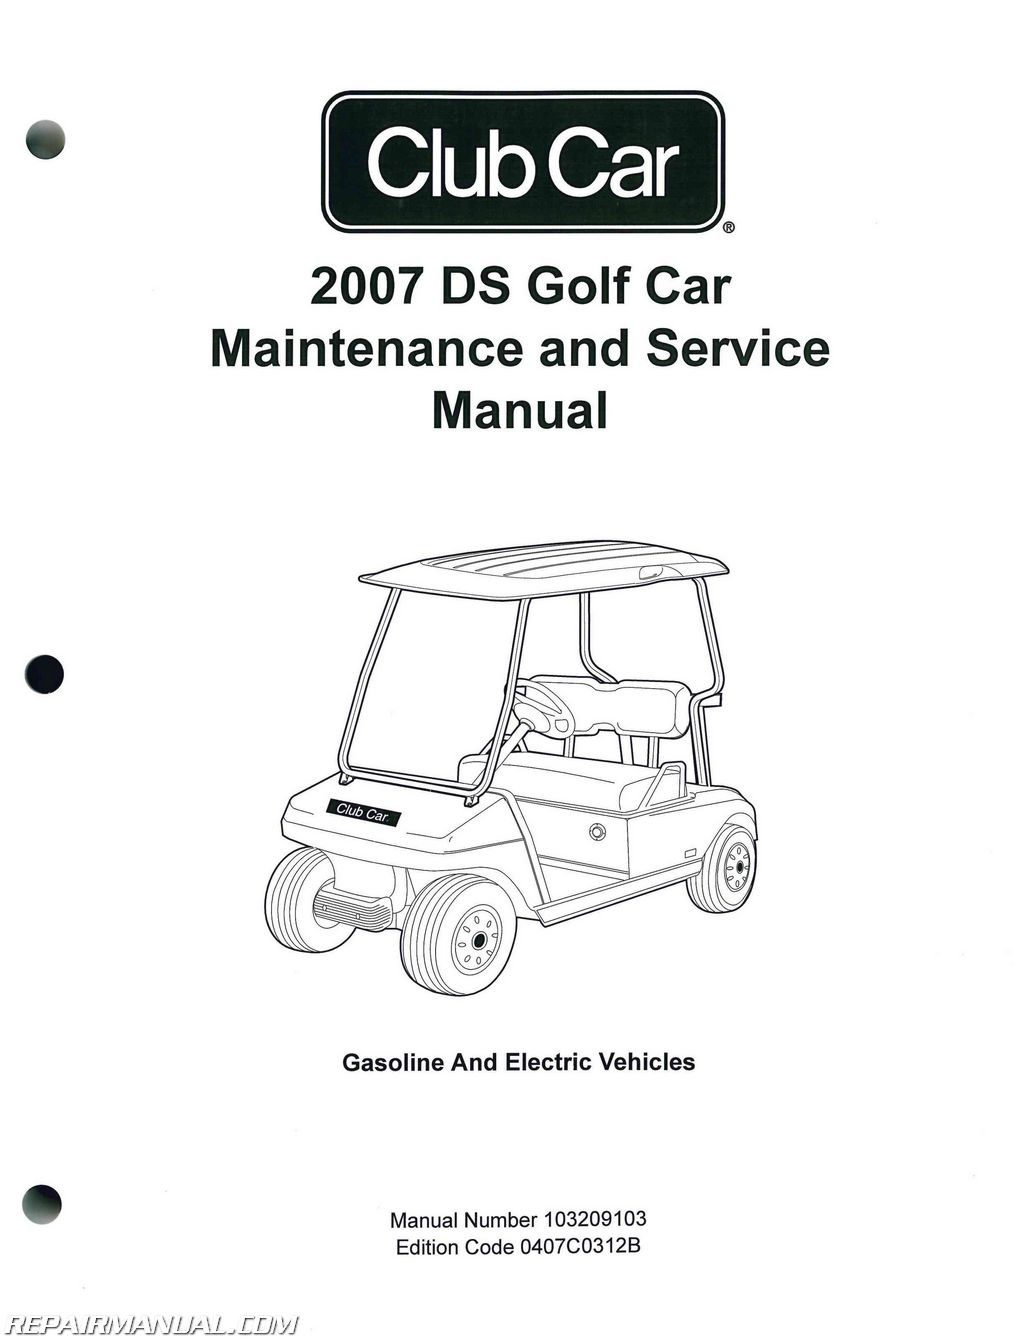 2007 Club Car Ds Golf Car Gas And Electric Golf Cart Service Manual